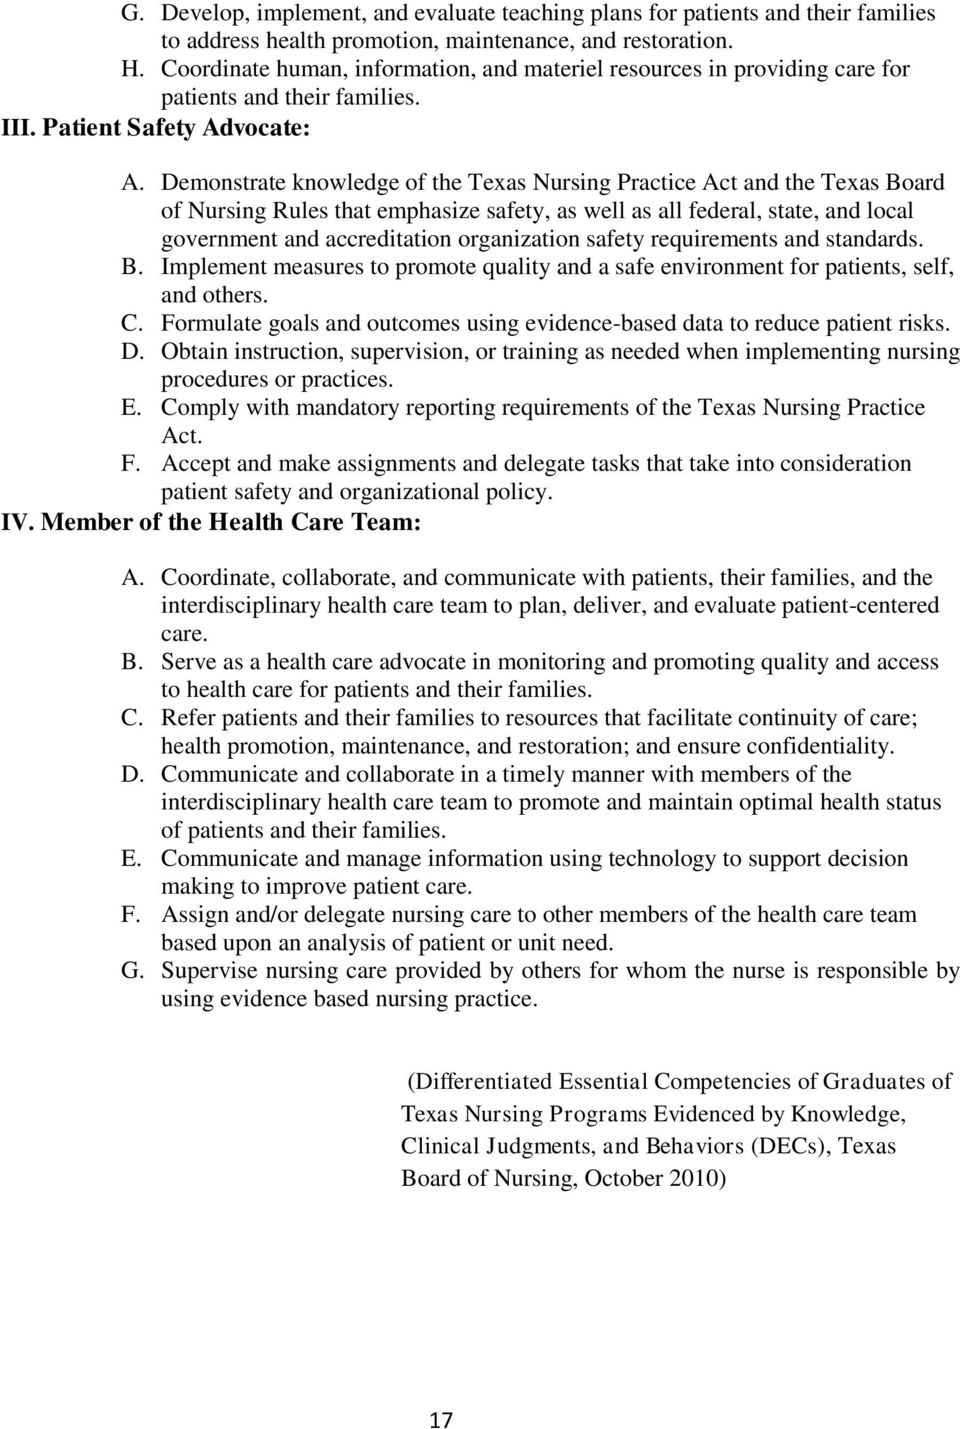 Demonstrate knowledge of the Texas Nursing Practice Act and the Texas Board of Nursing Rules that emphasize safety, as well as all federal, state, and local government and accreditation organization